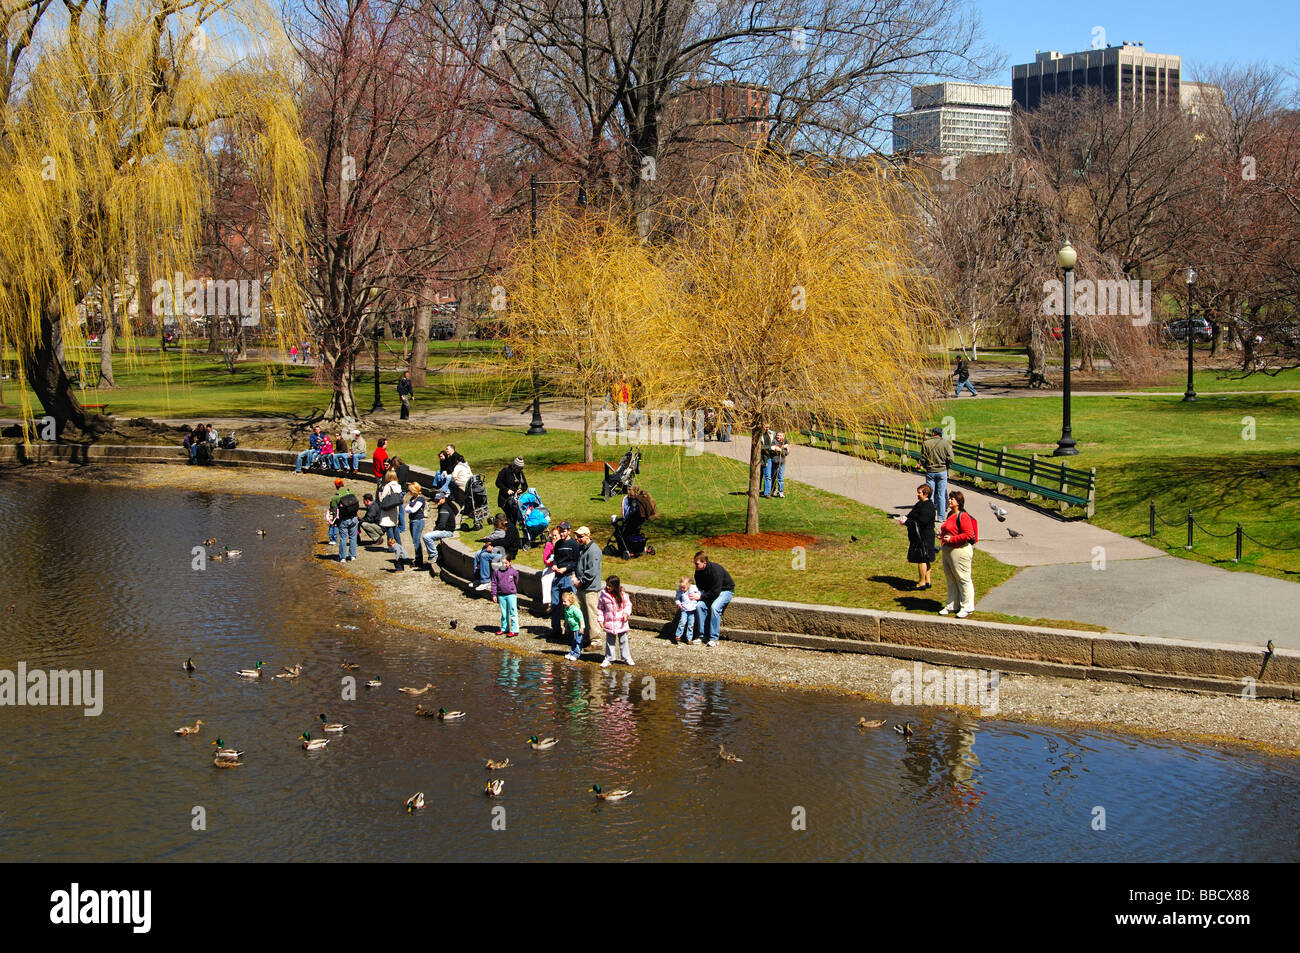 Families with kids feeding ducks in the Lagoon of the Public Garden ...